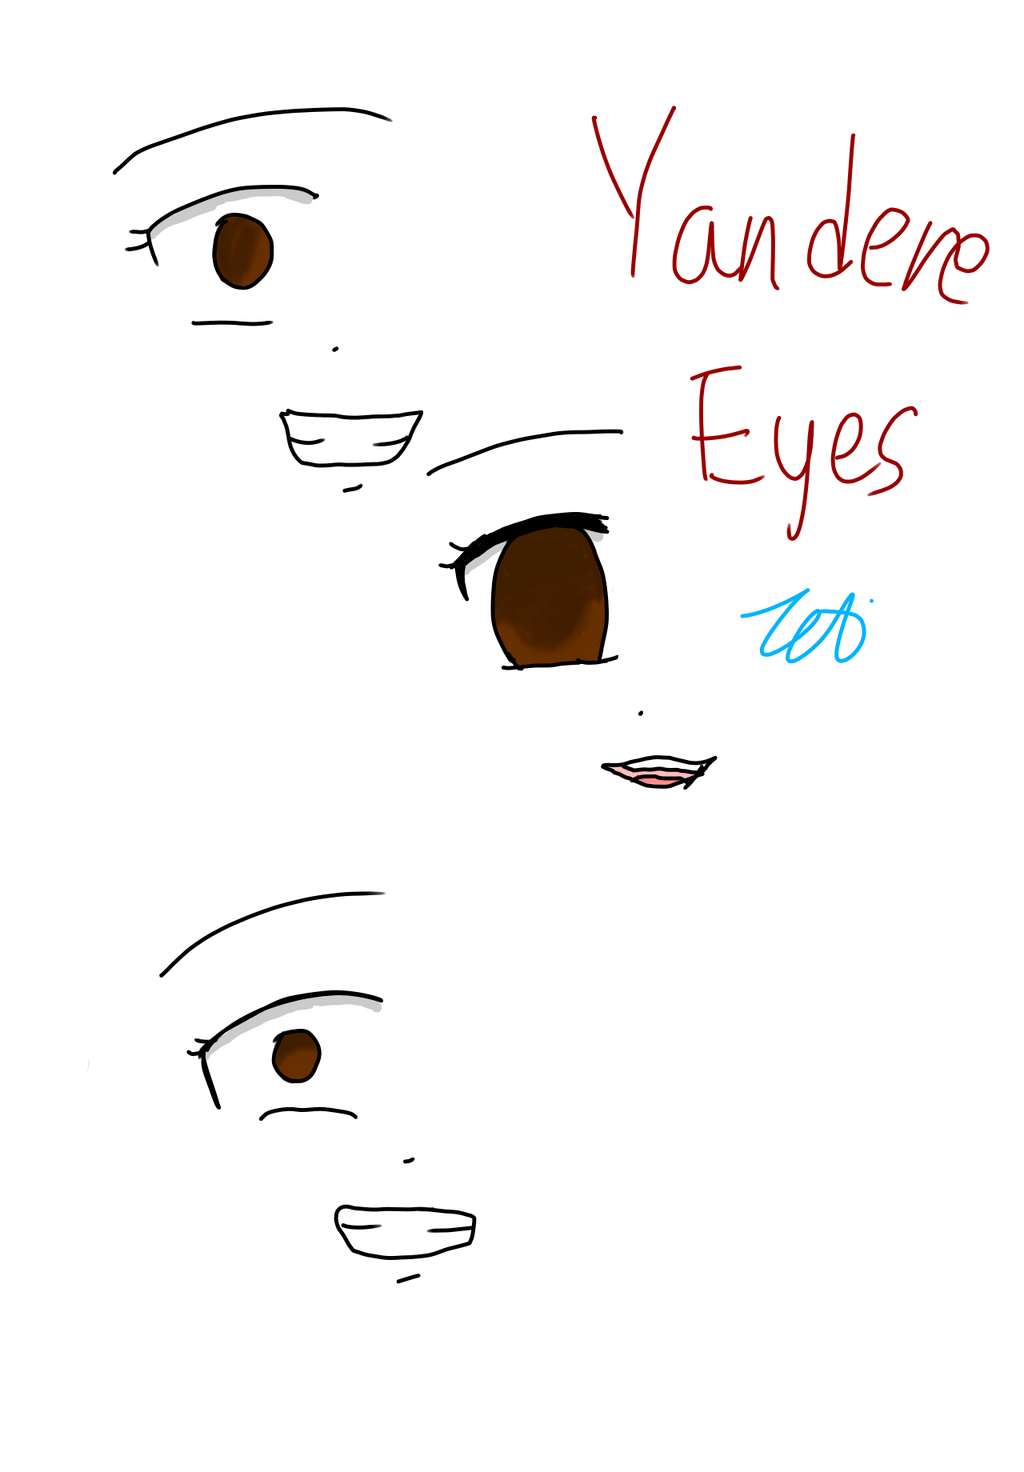 How to draw yandere eyes special offers detsky nabytekfo ccuart Image collections